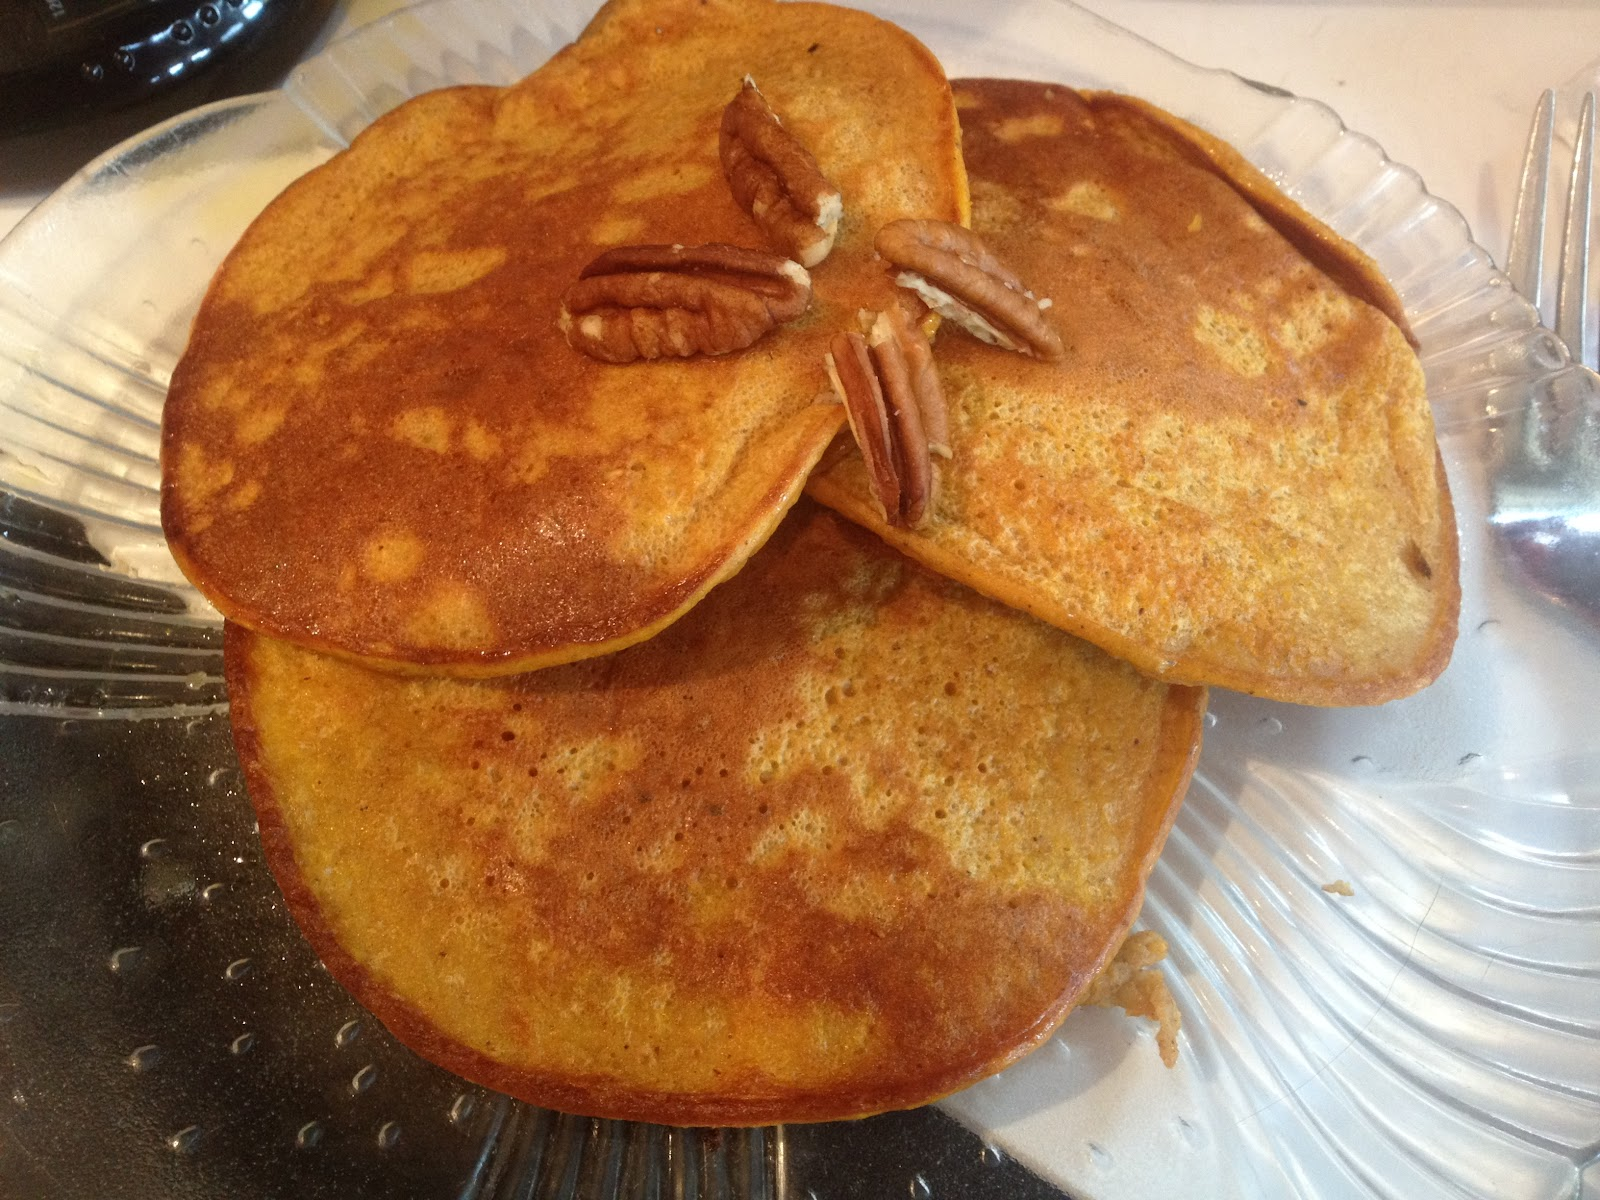 ... Fitness - Fitness. Food. Fun. Life. : Pumpkin Spice Protein Pancakes